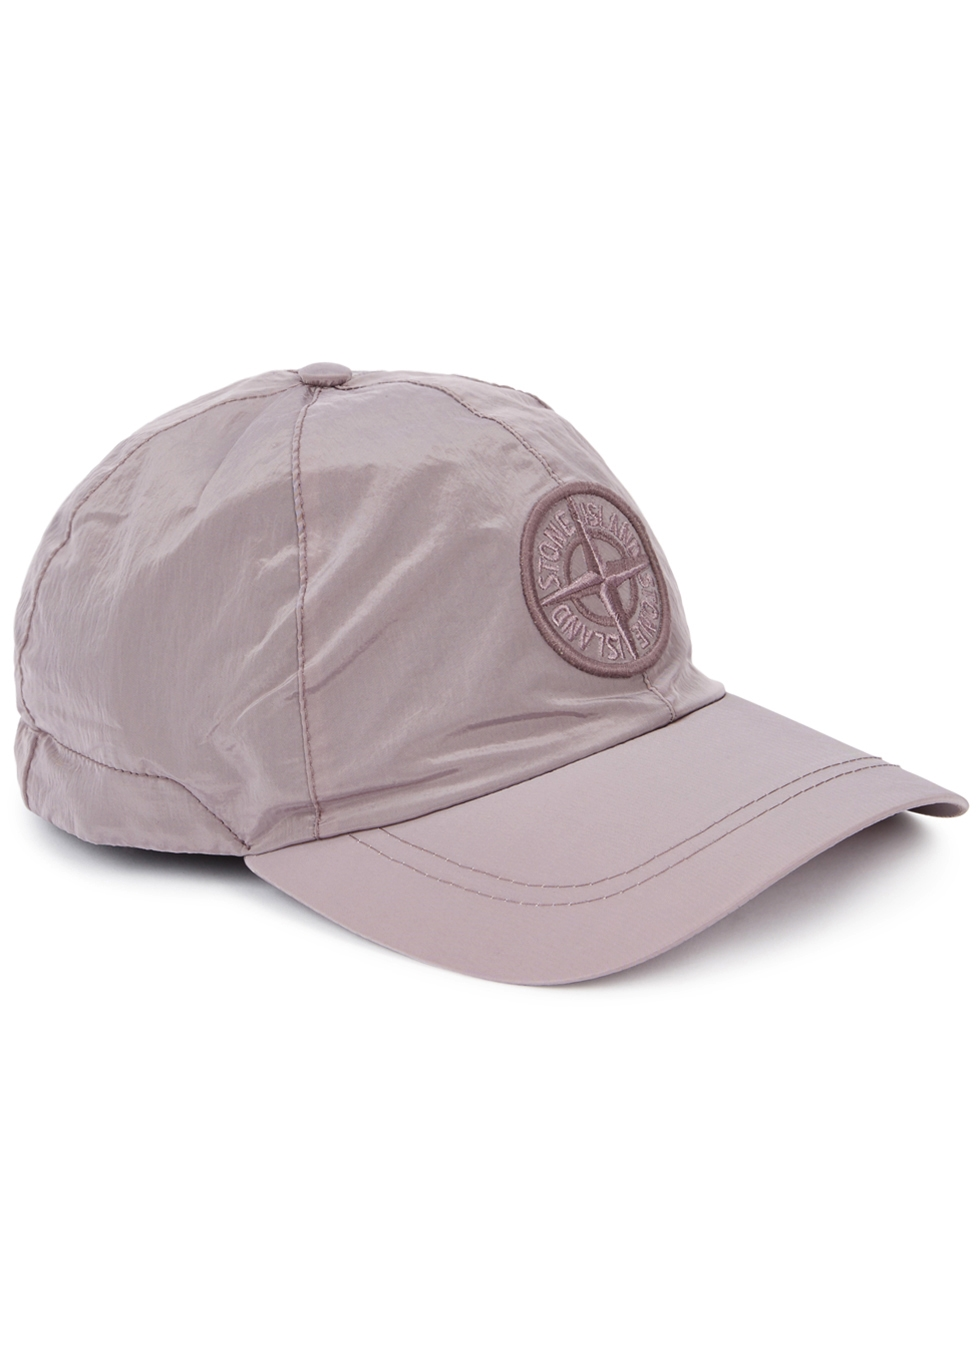 STONE ISLAND Mauve Embroidered Shell Cap in Pink